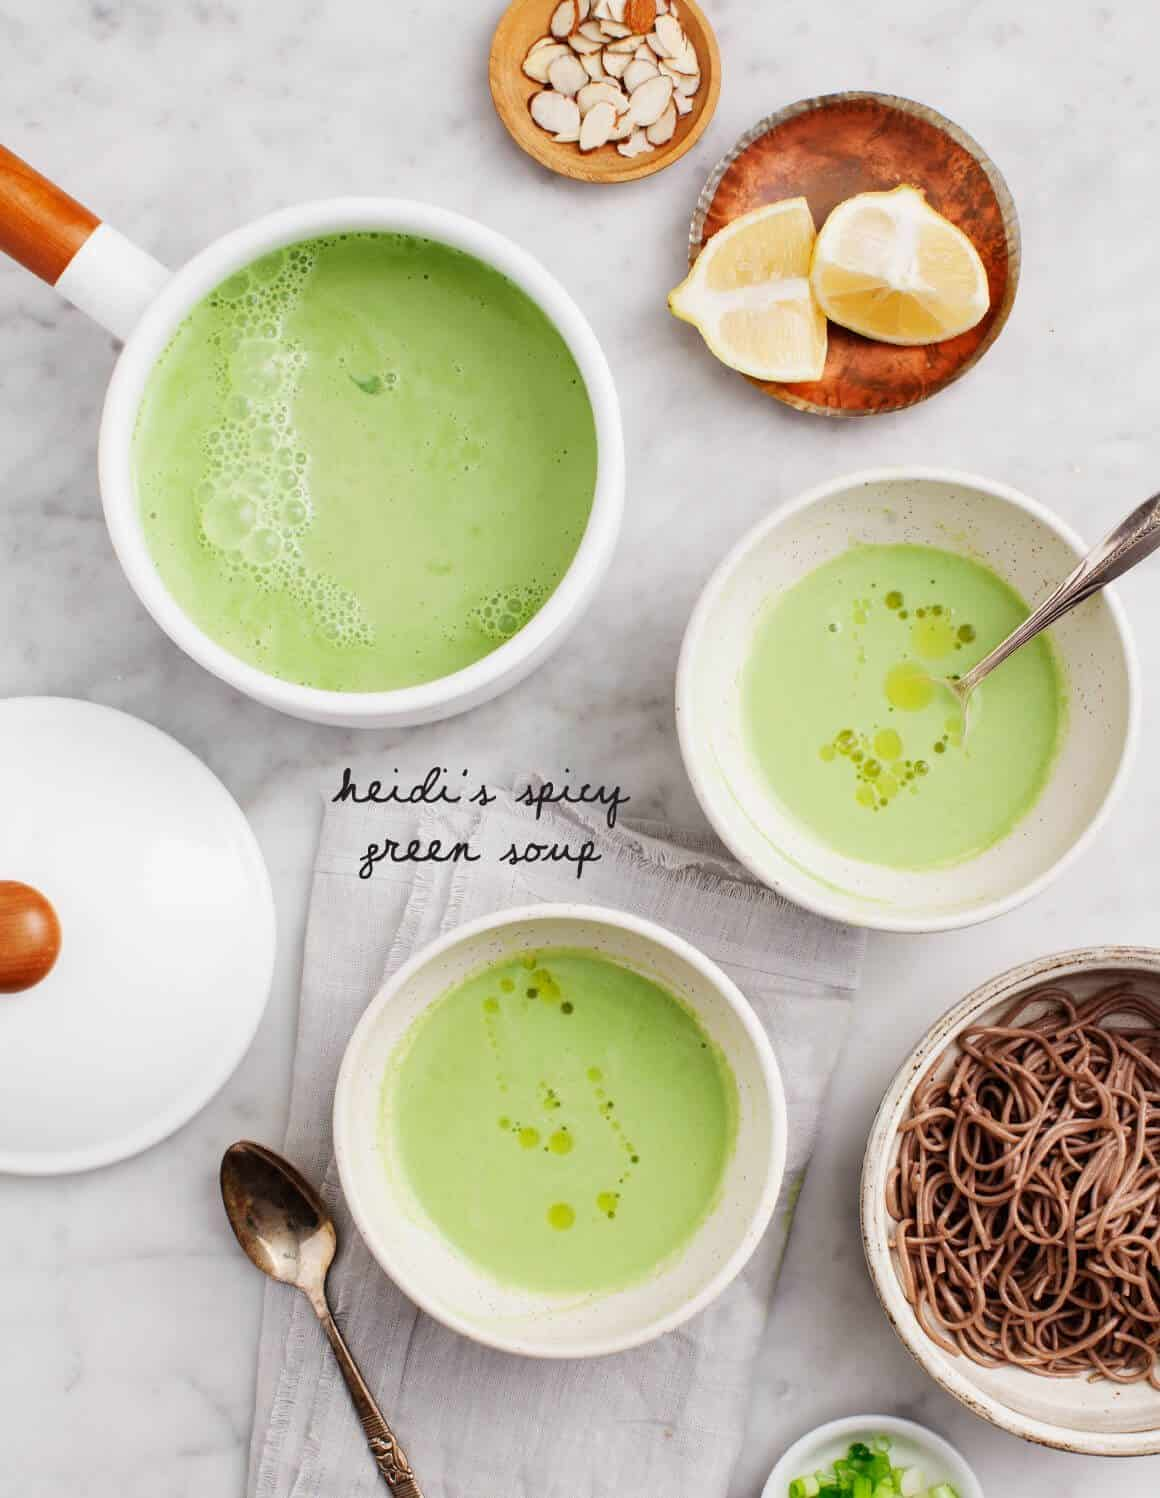 Heidi's Spicy Green Soup